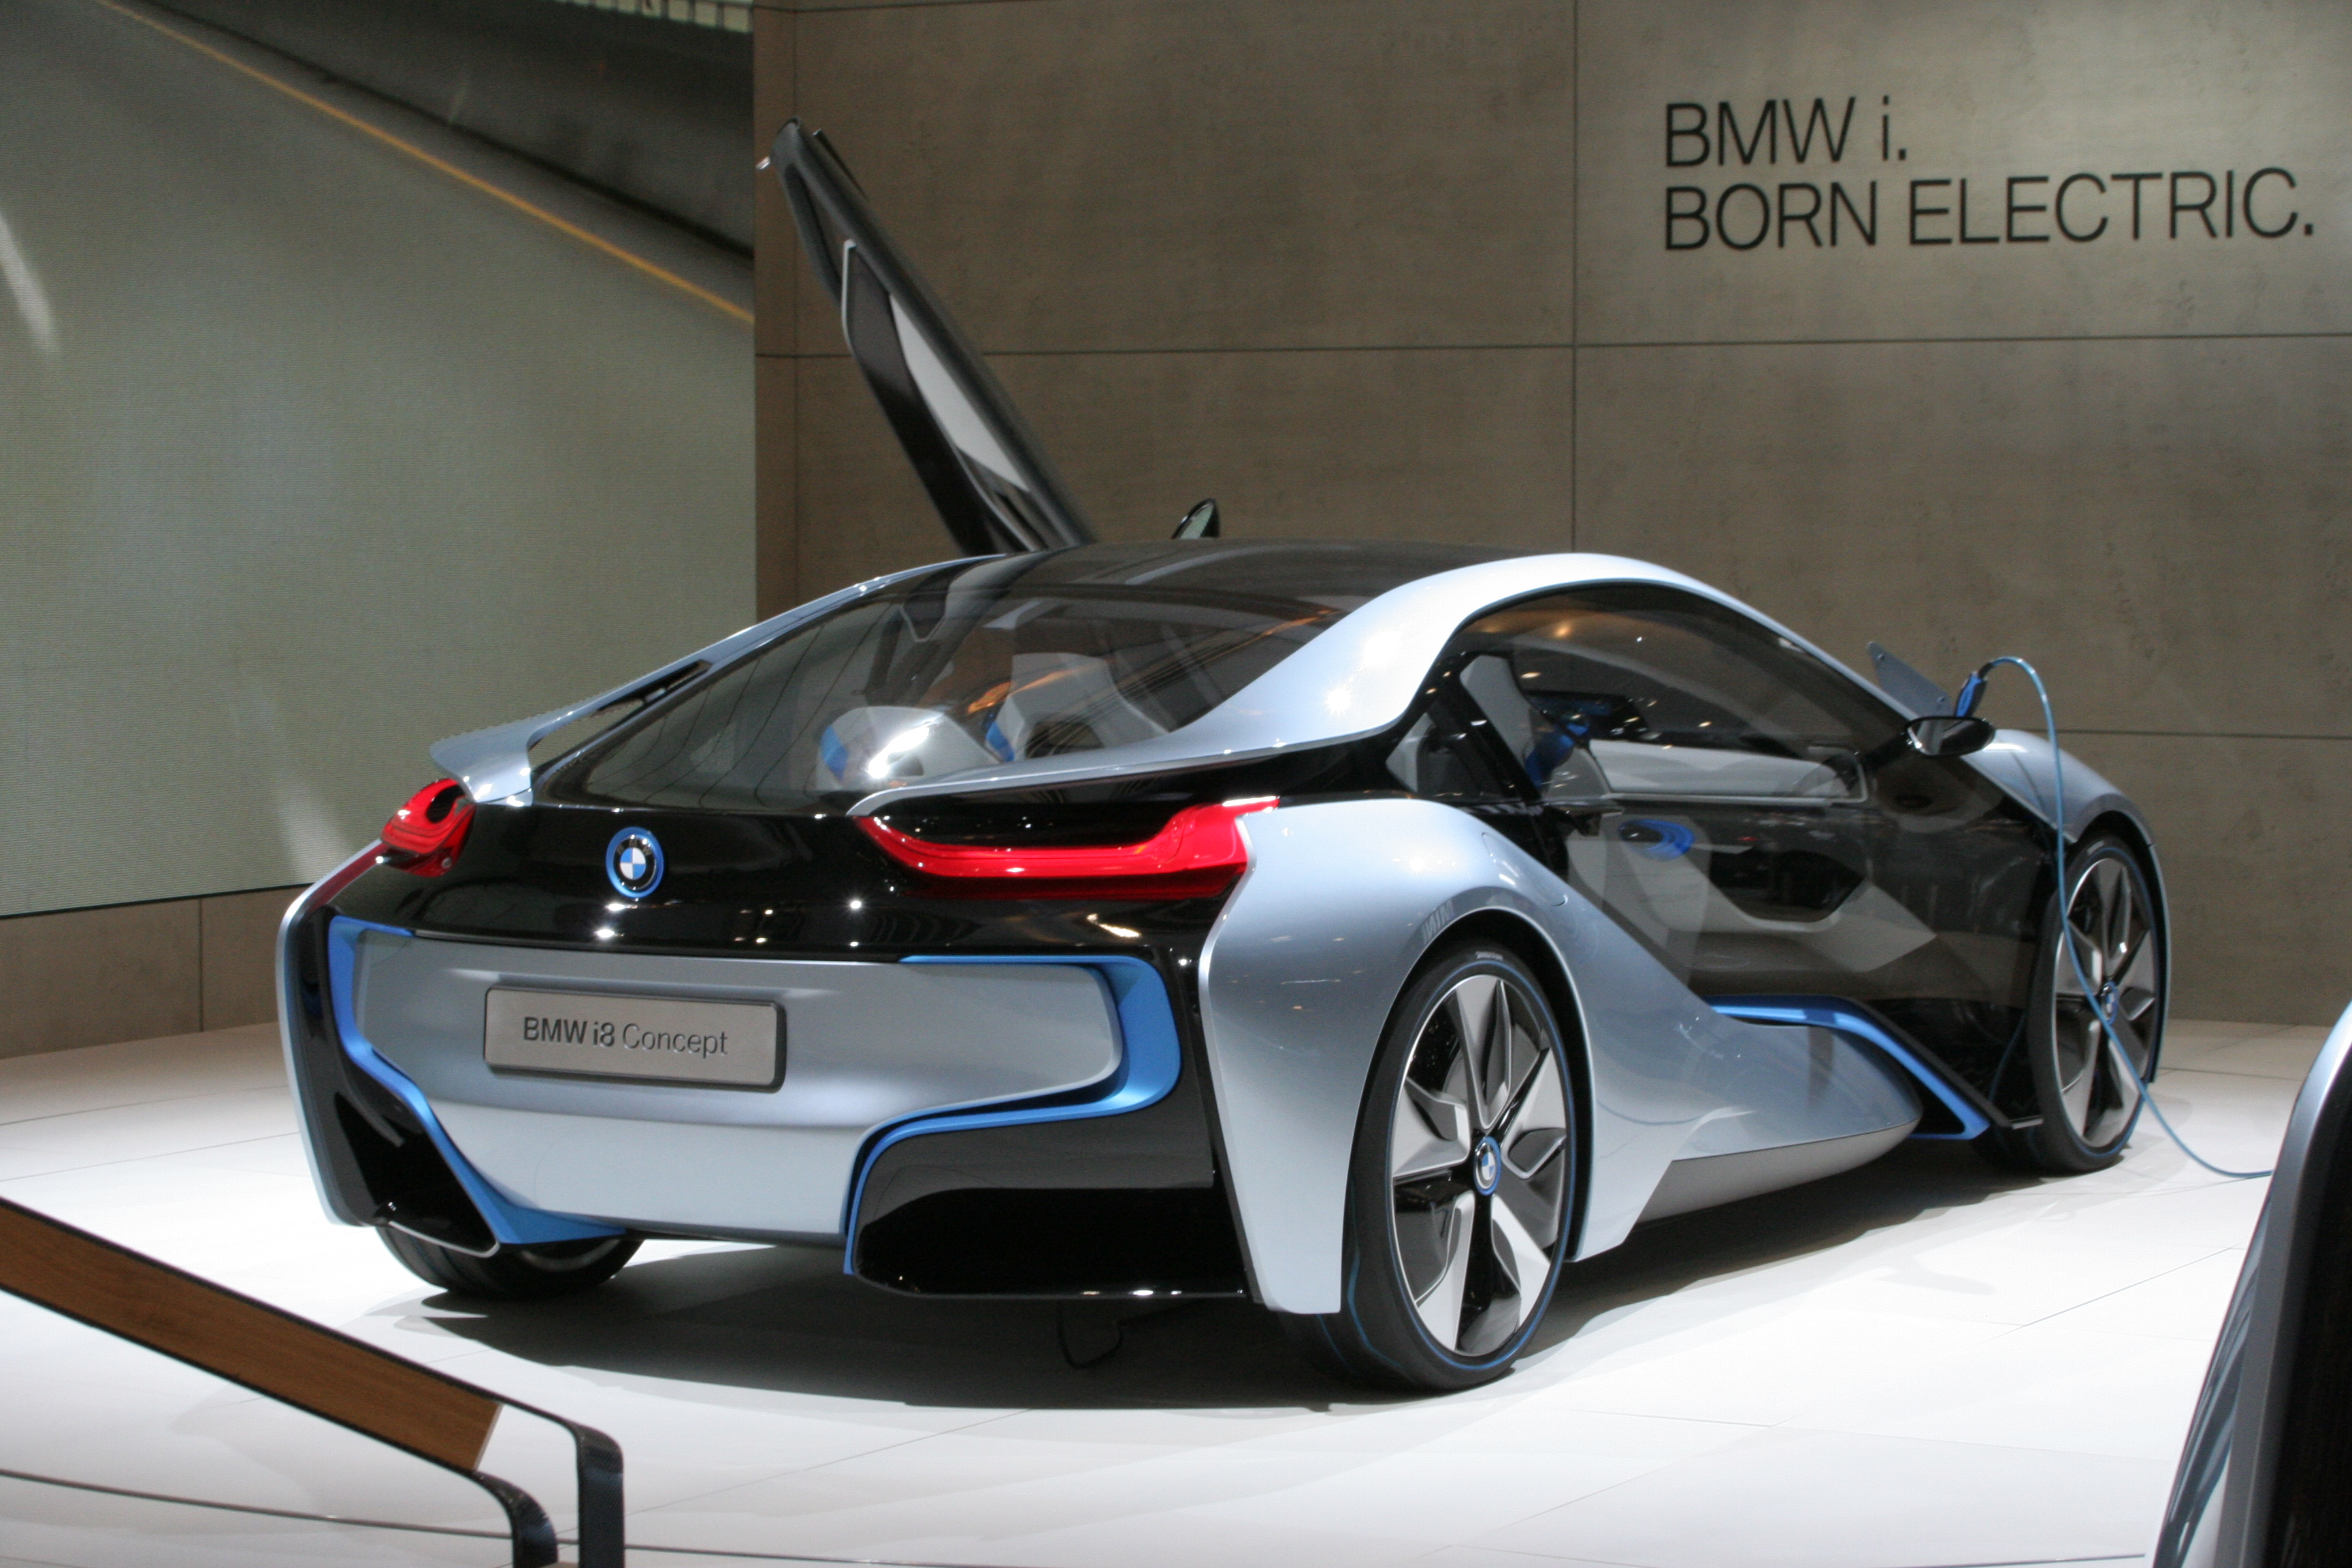 BMW i8 Concept Rear Wallpaper For Android